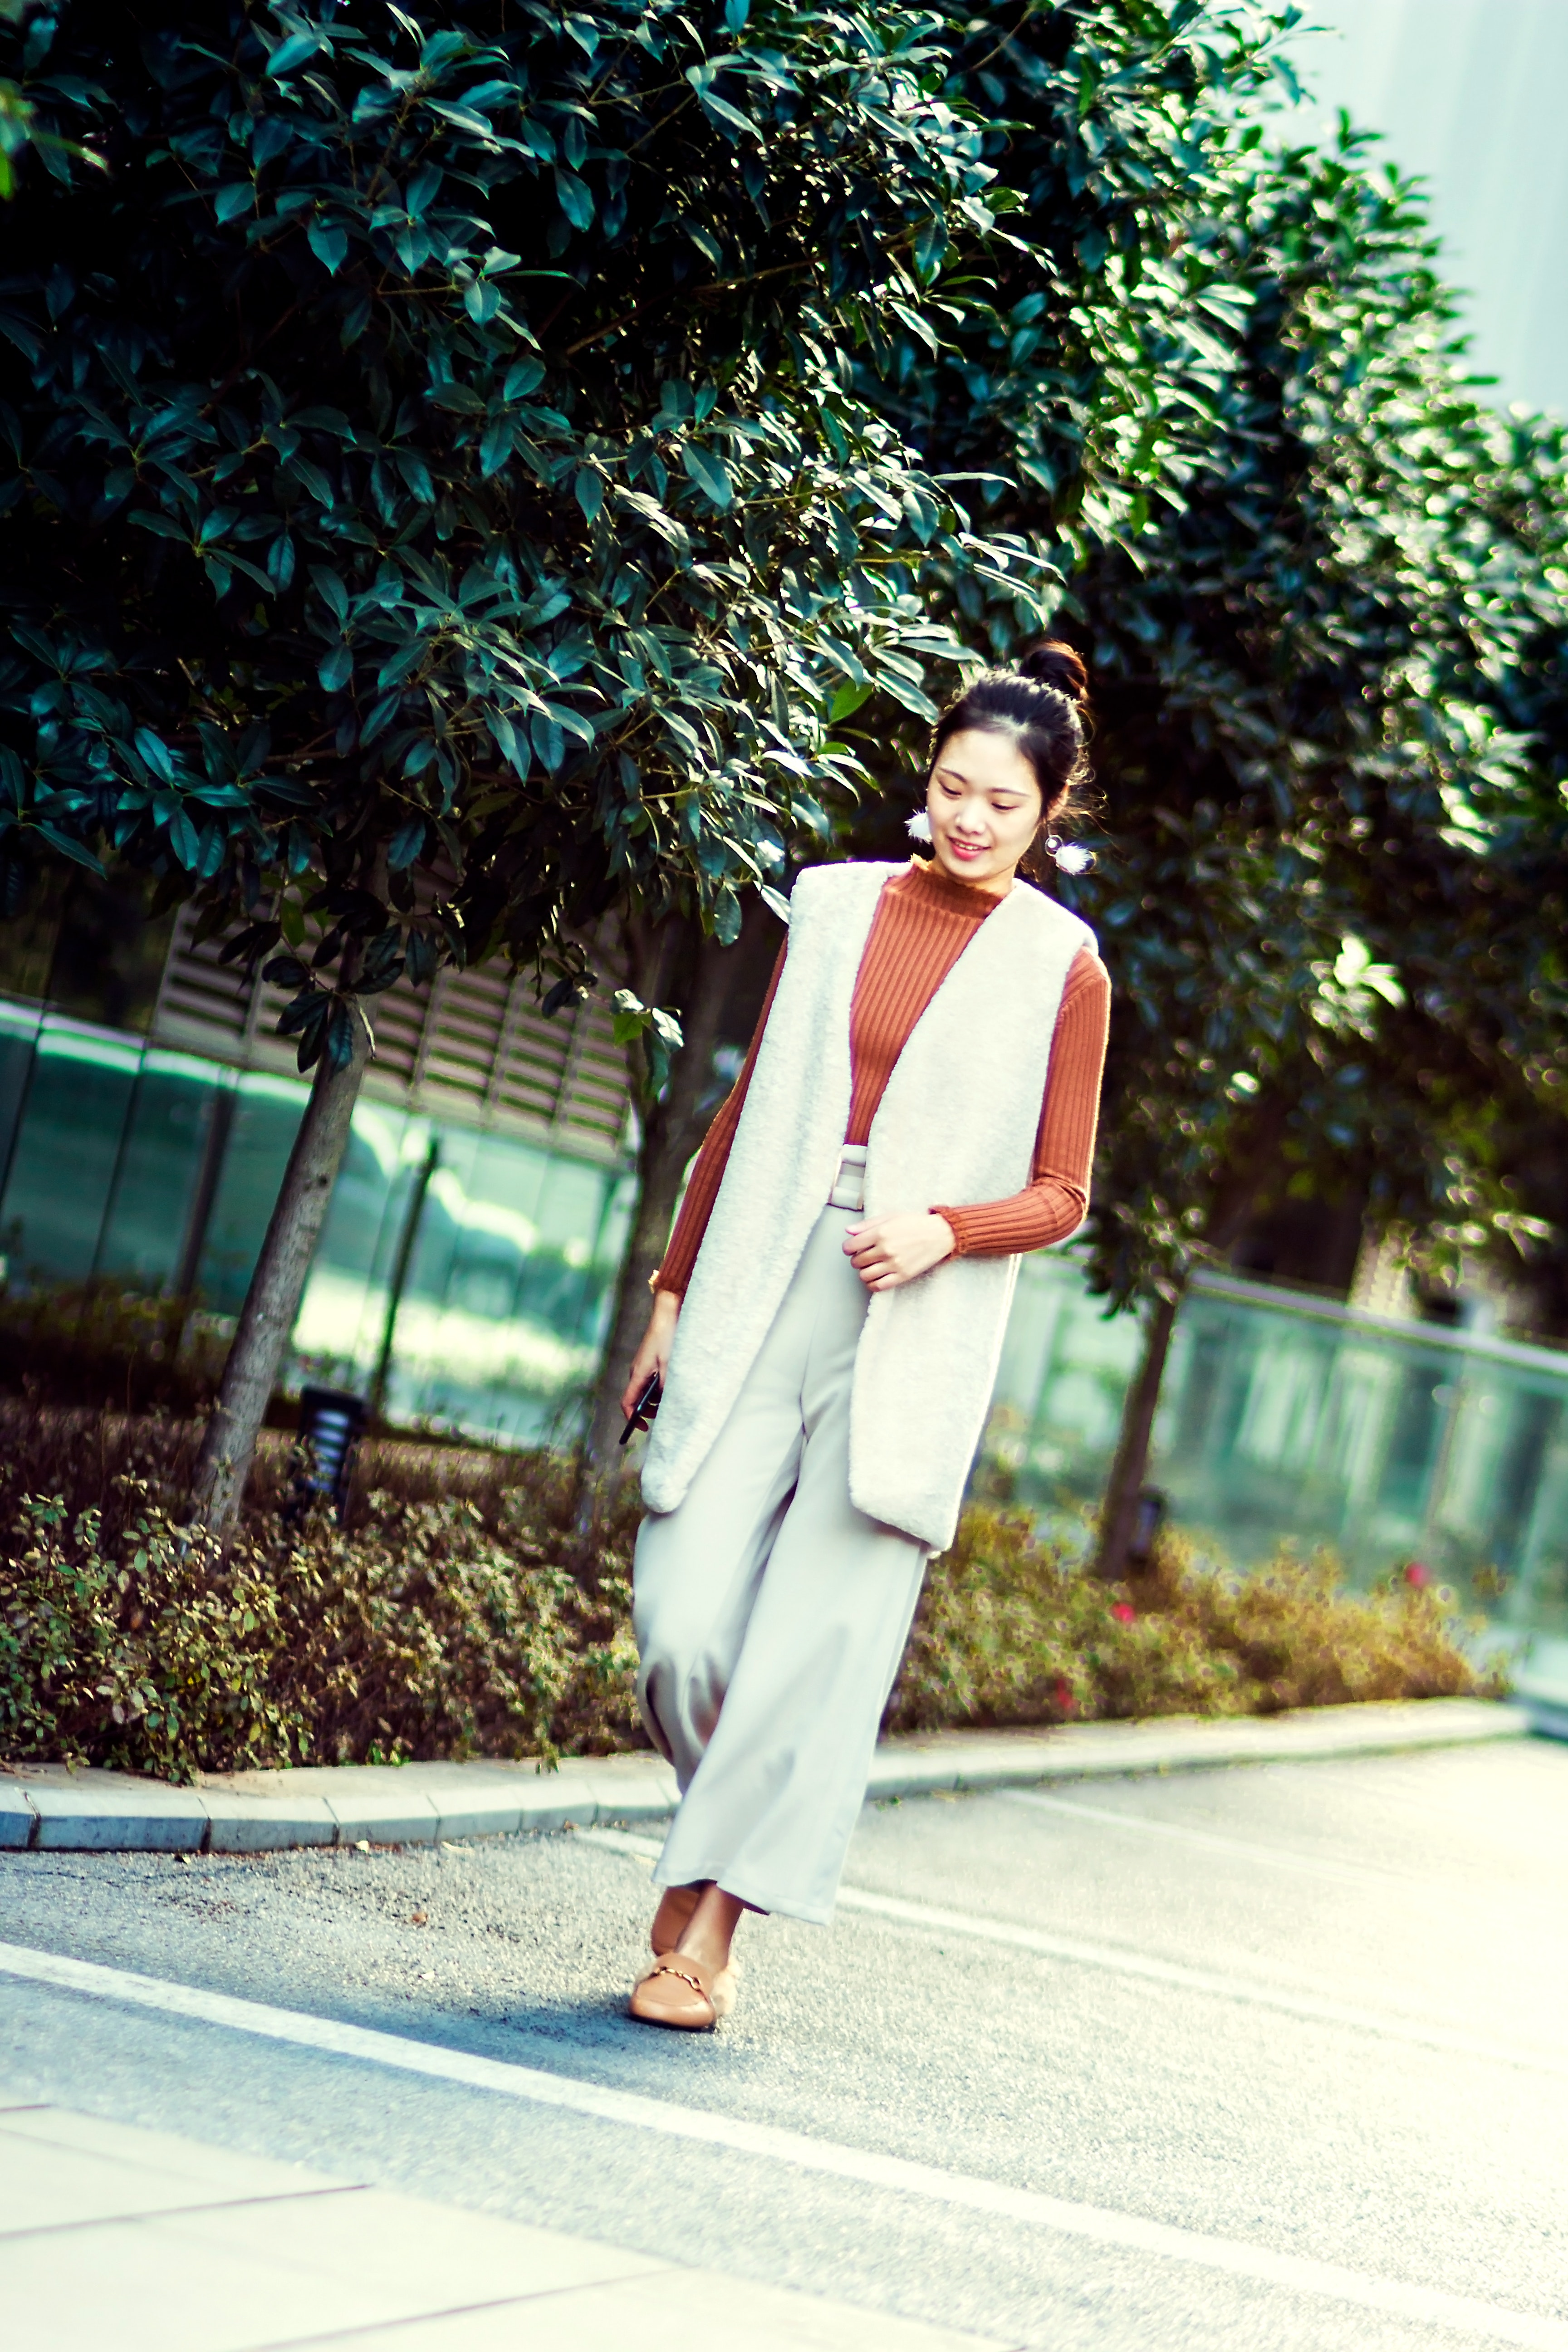 Photography of A Woman Walking, Pretty, Smile, Plants, Photoshoot, HQ Photo